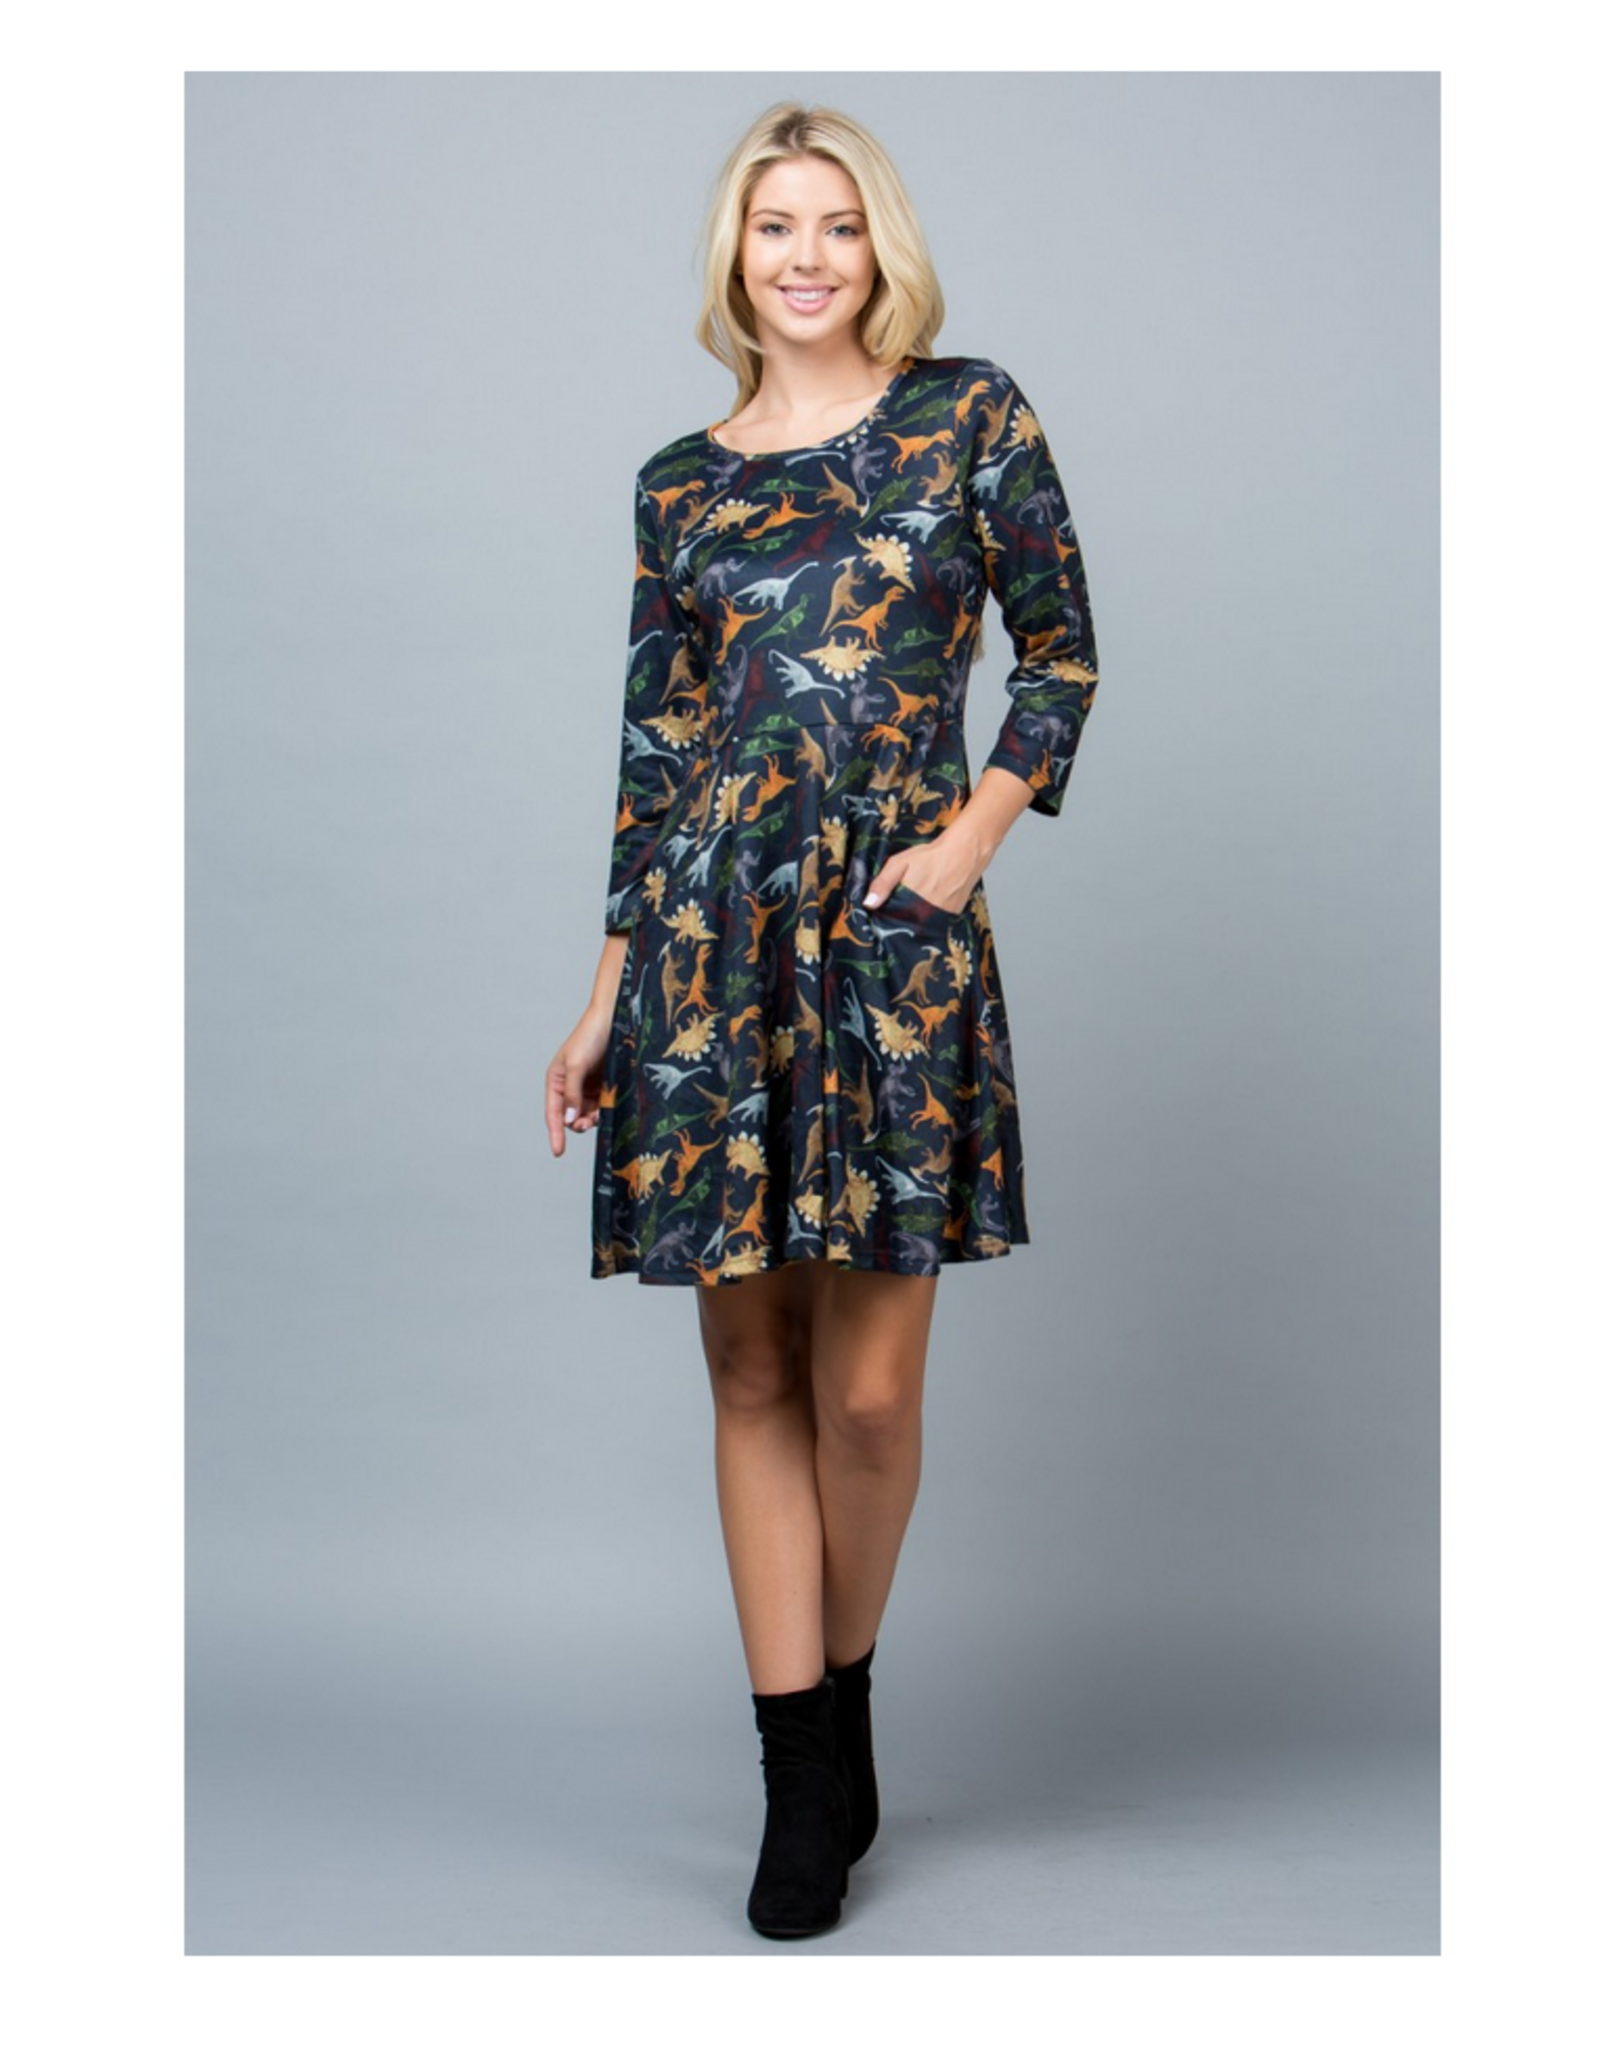 Colorful Dinosaurs Dress